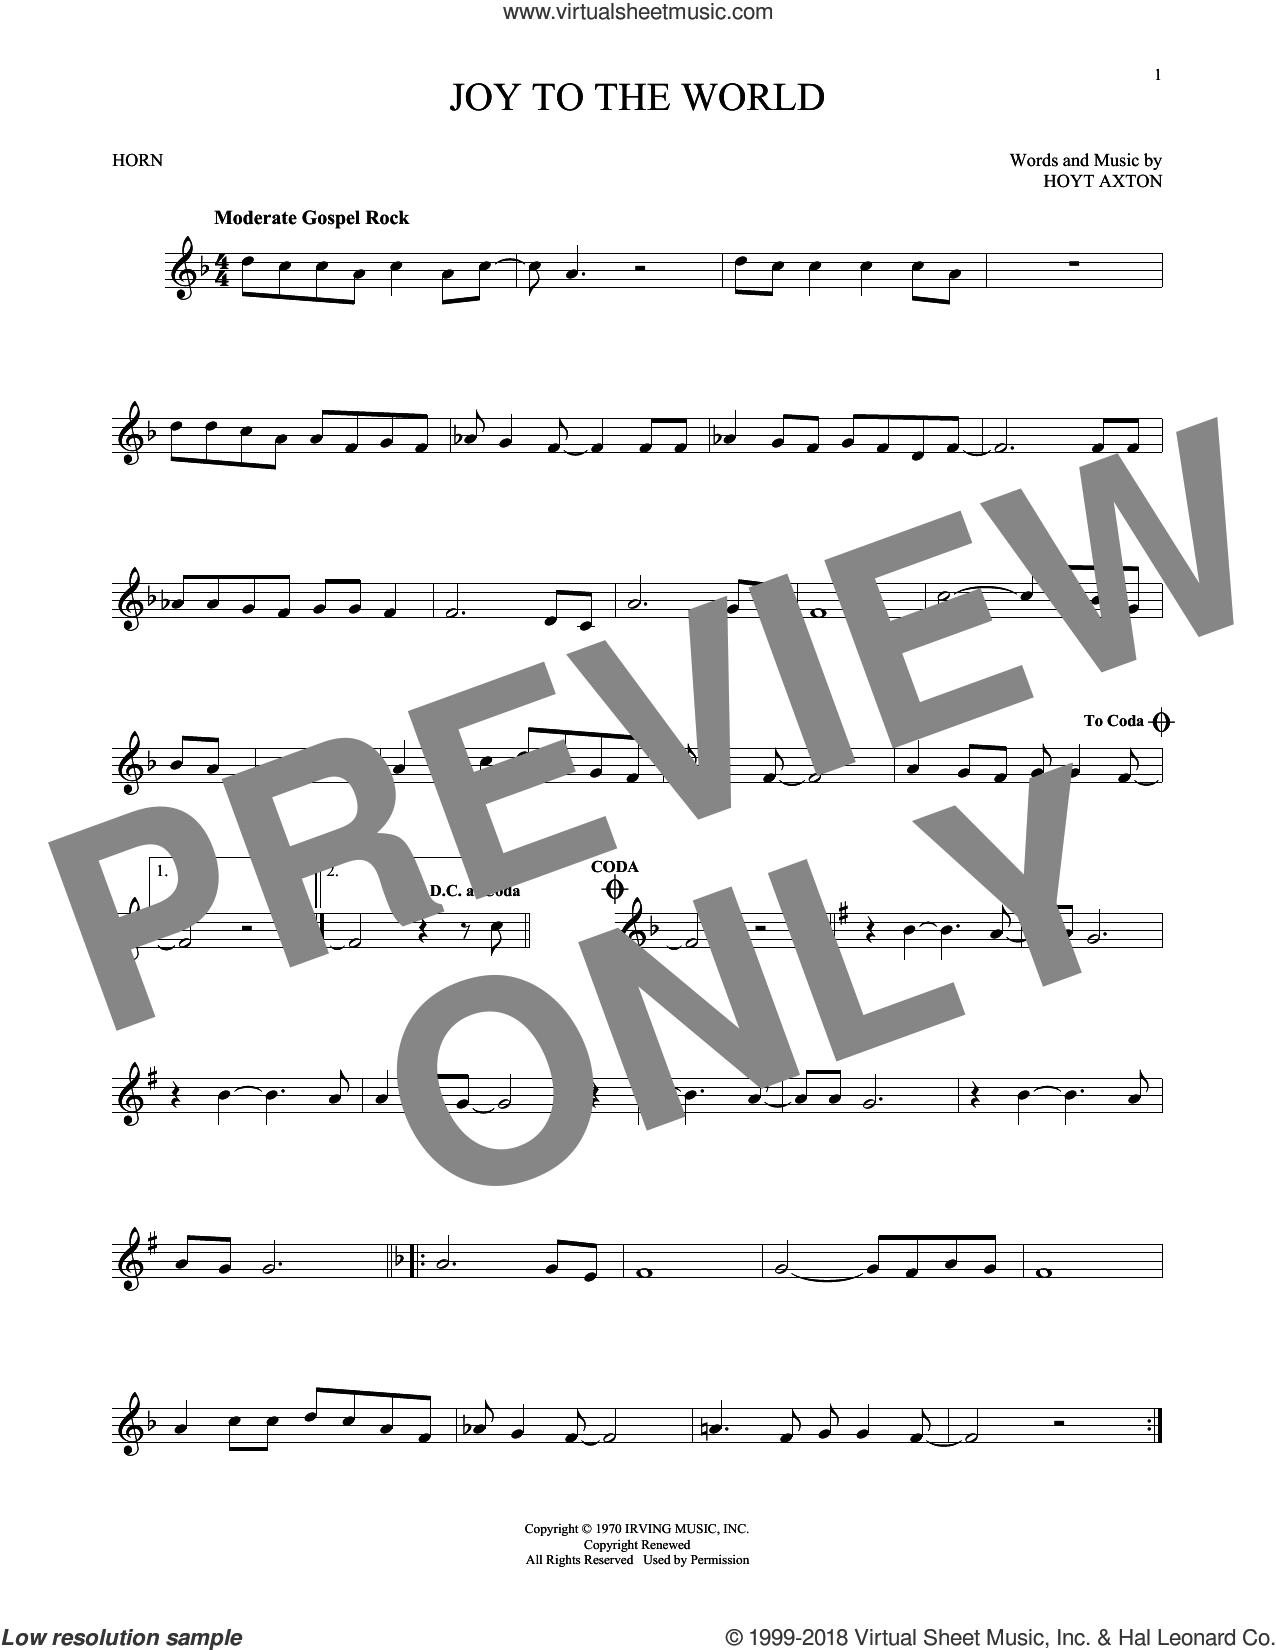 Joy To The World sheet music for horn solo by Three Dog Night and Hoyt Axton, intermediate skill level